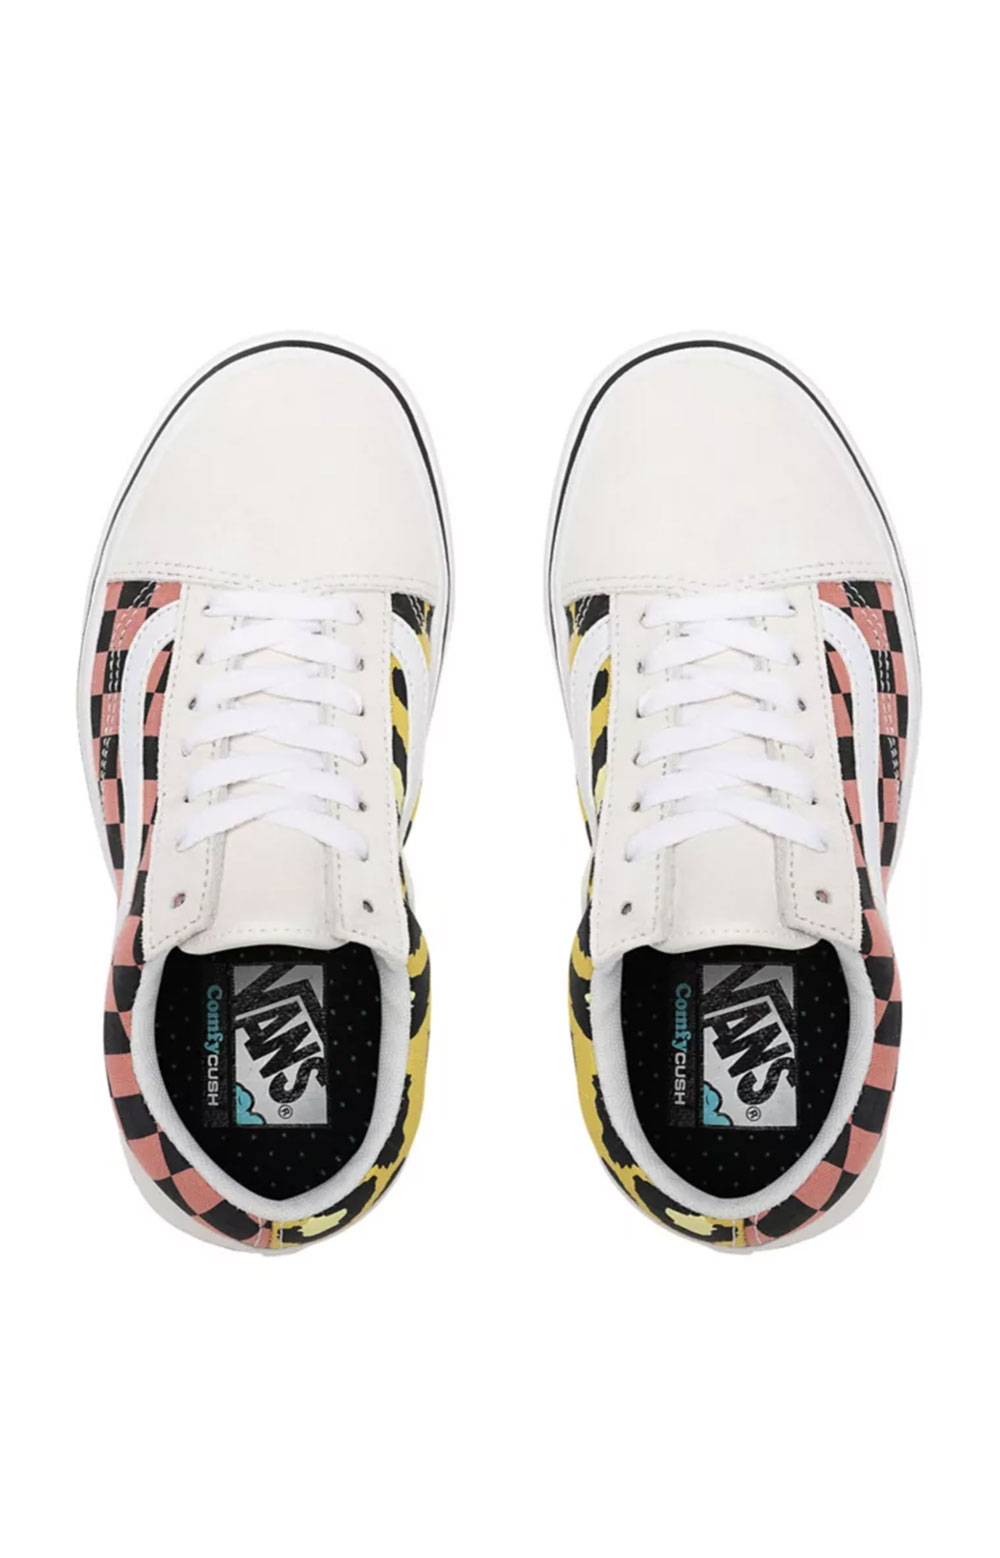 (WMA1PC) Mixed Media ComfyCush Old Skool Shoes - White/Multi 2